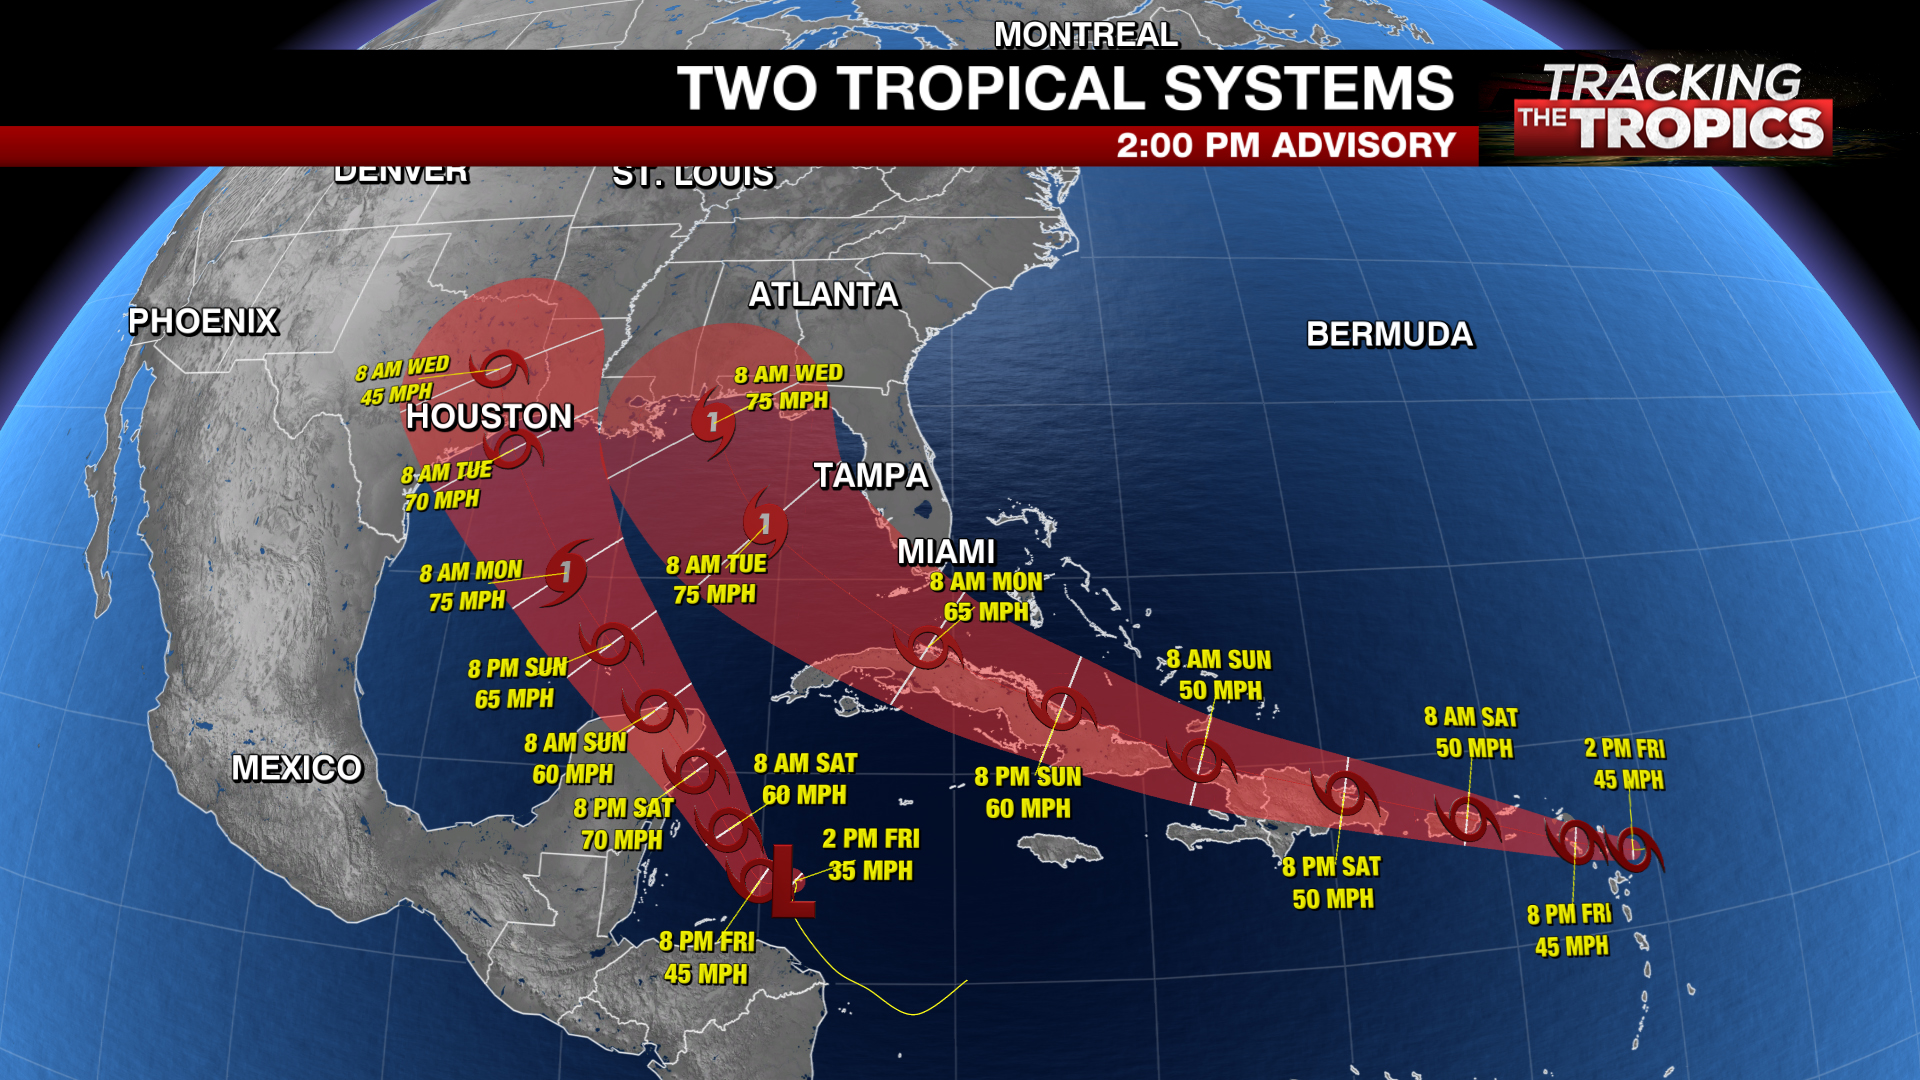 Tracking The Tropics Tropical Storm Laura S Track Shifts West Marco Expected To Form Soon Wfxrtv